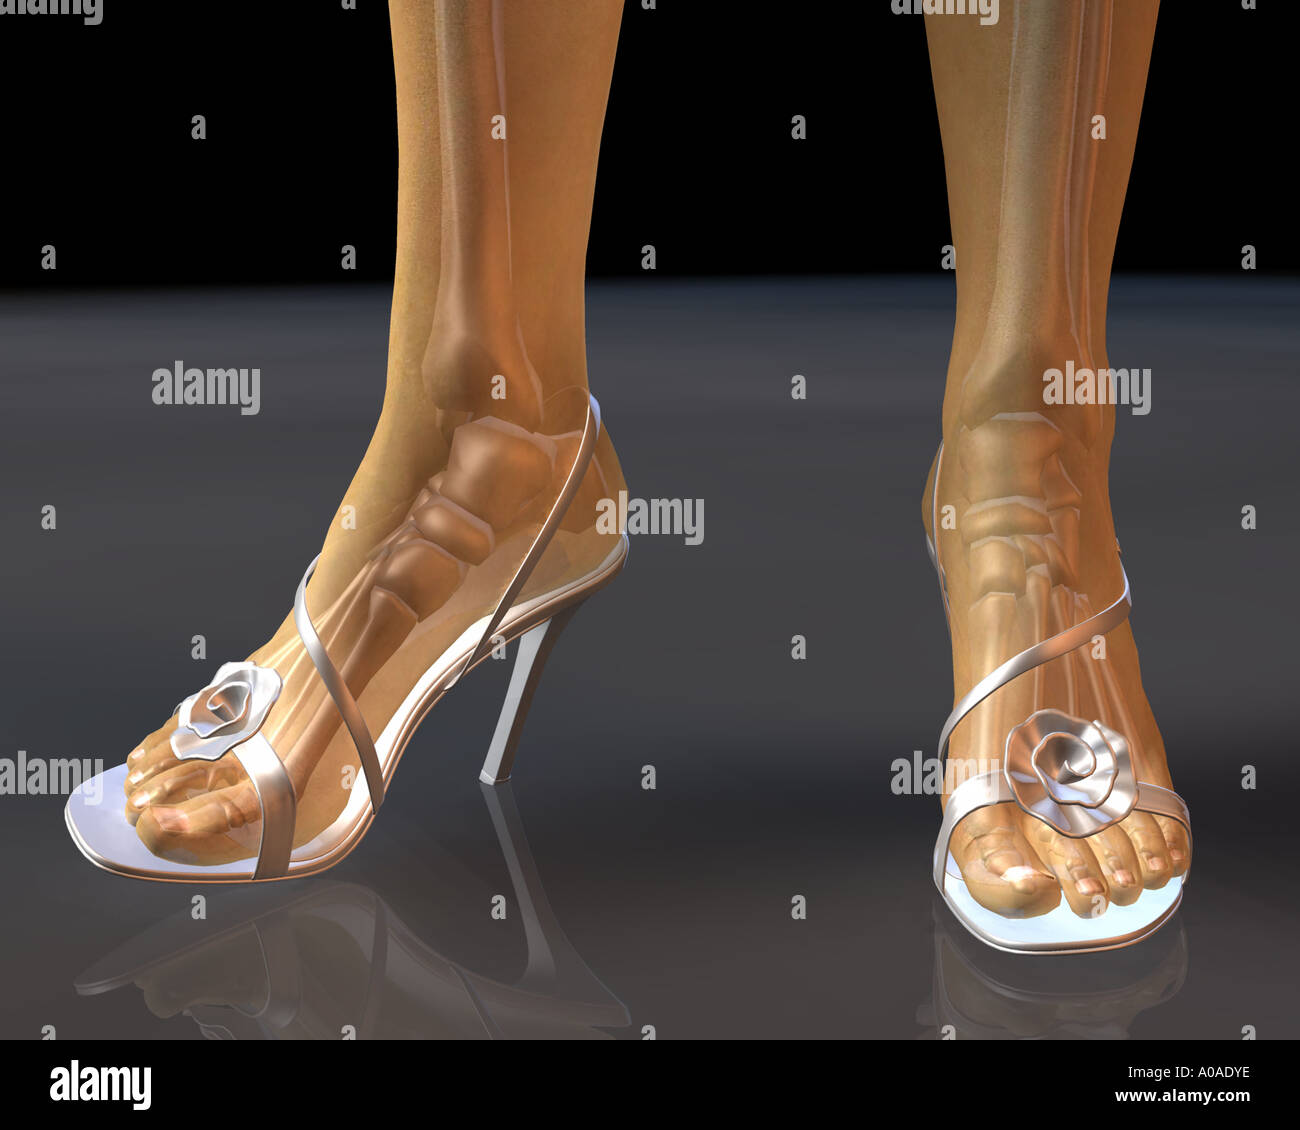 Illustrative Diagram Showing Female Feet And Legs In High Heel Shoes